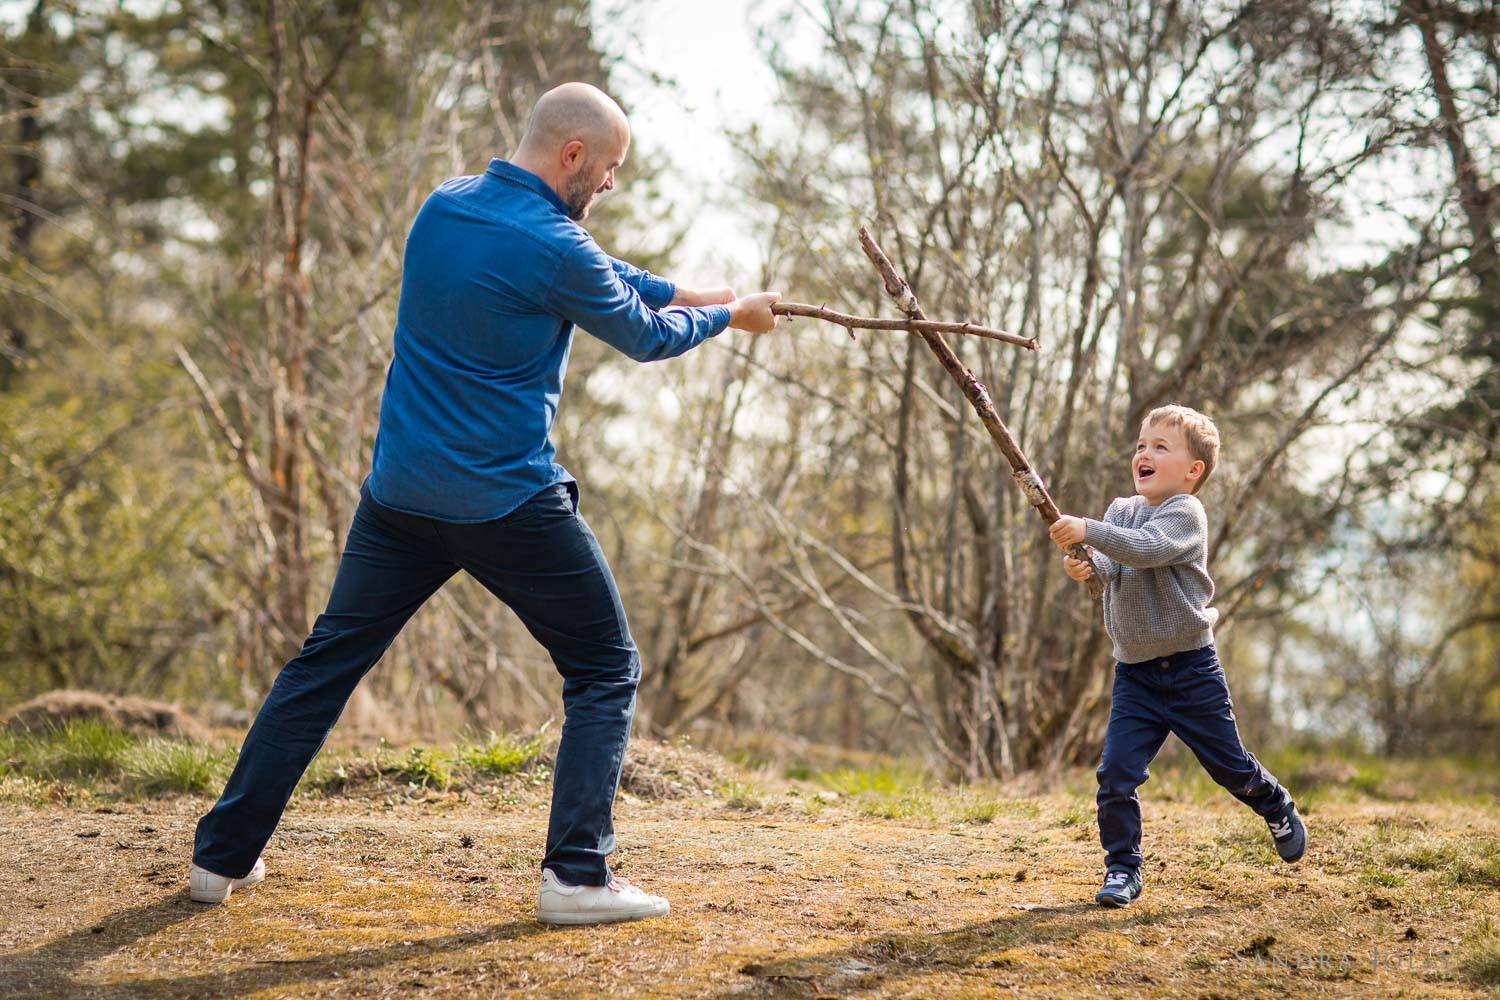 father-and-son-sword-fighting-by-stockholm-familjefotograf.jpg